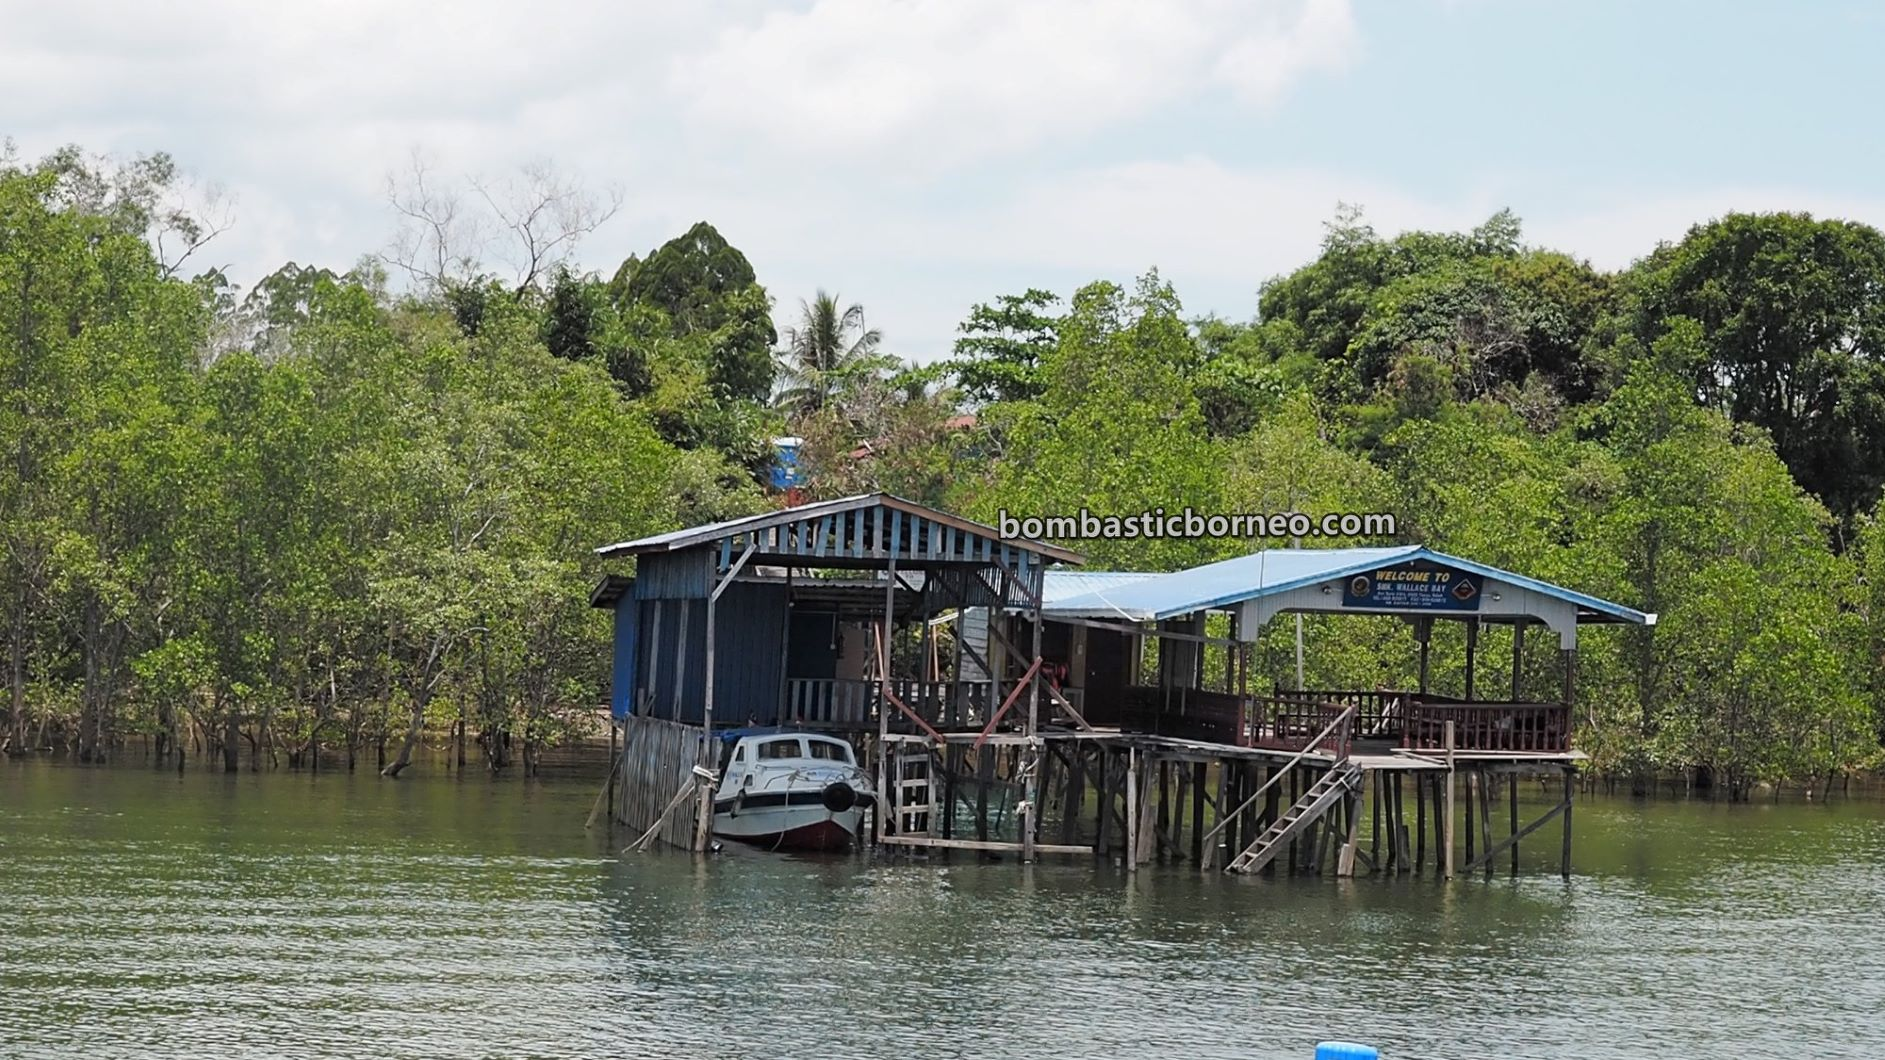 Island, adventure, backpackers, destination, jelajah, Transportation, Tawau, Malaysia, tourist attraction, Travel Guide, Trans Borneo, 穿越婆罗洲游踪, 马来西亚沙巴斗湖